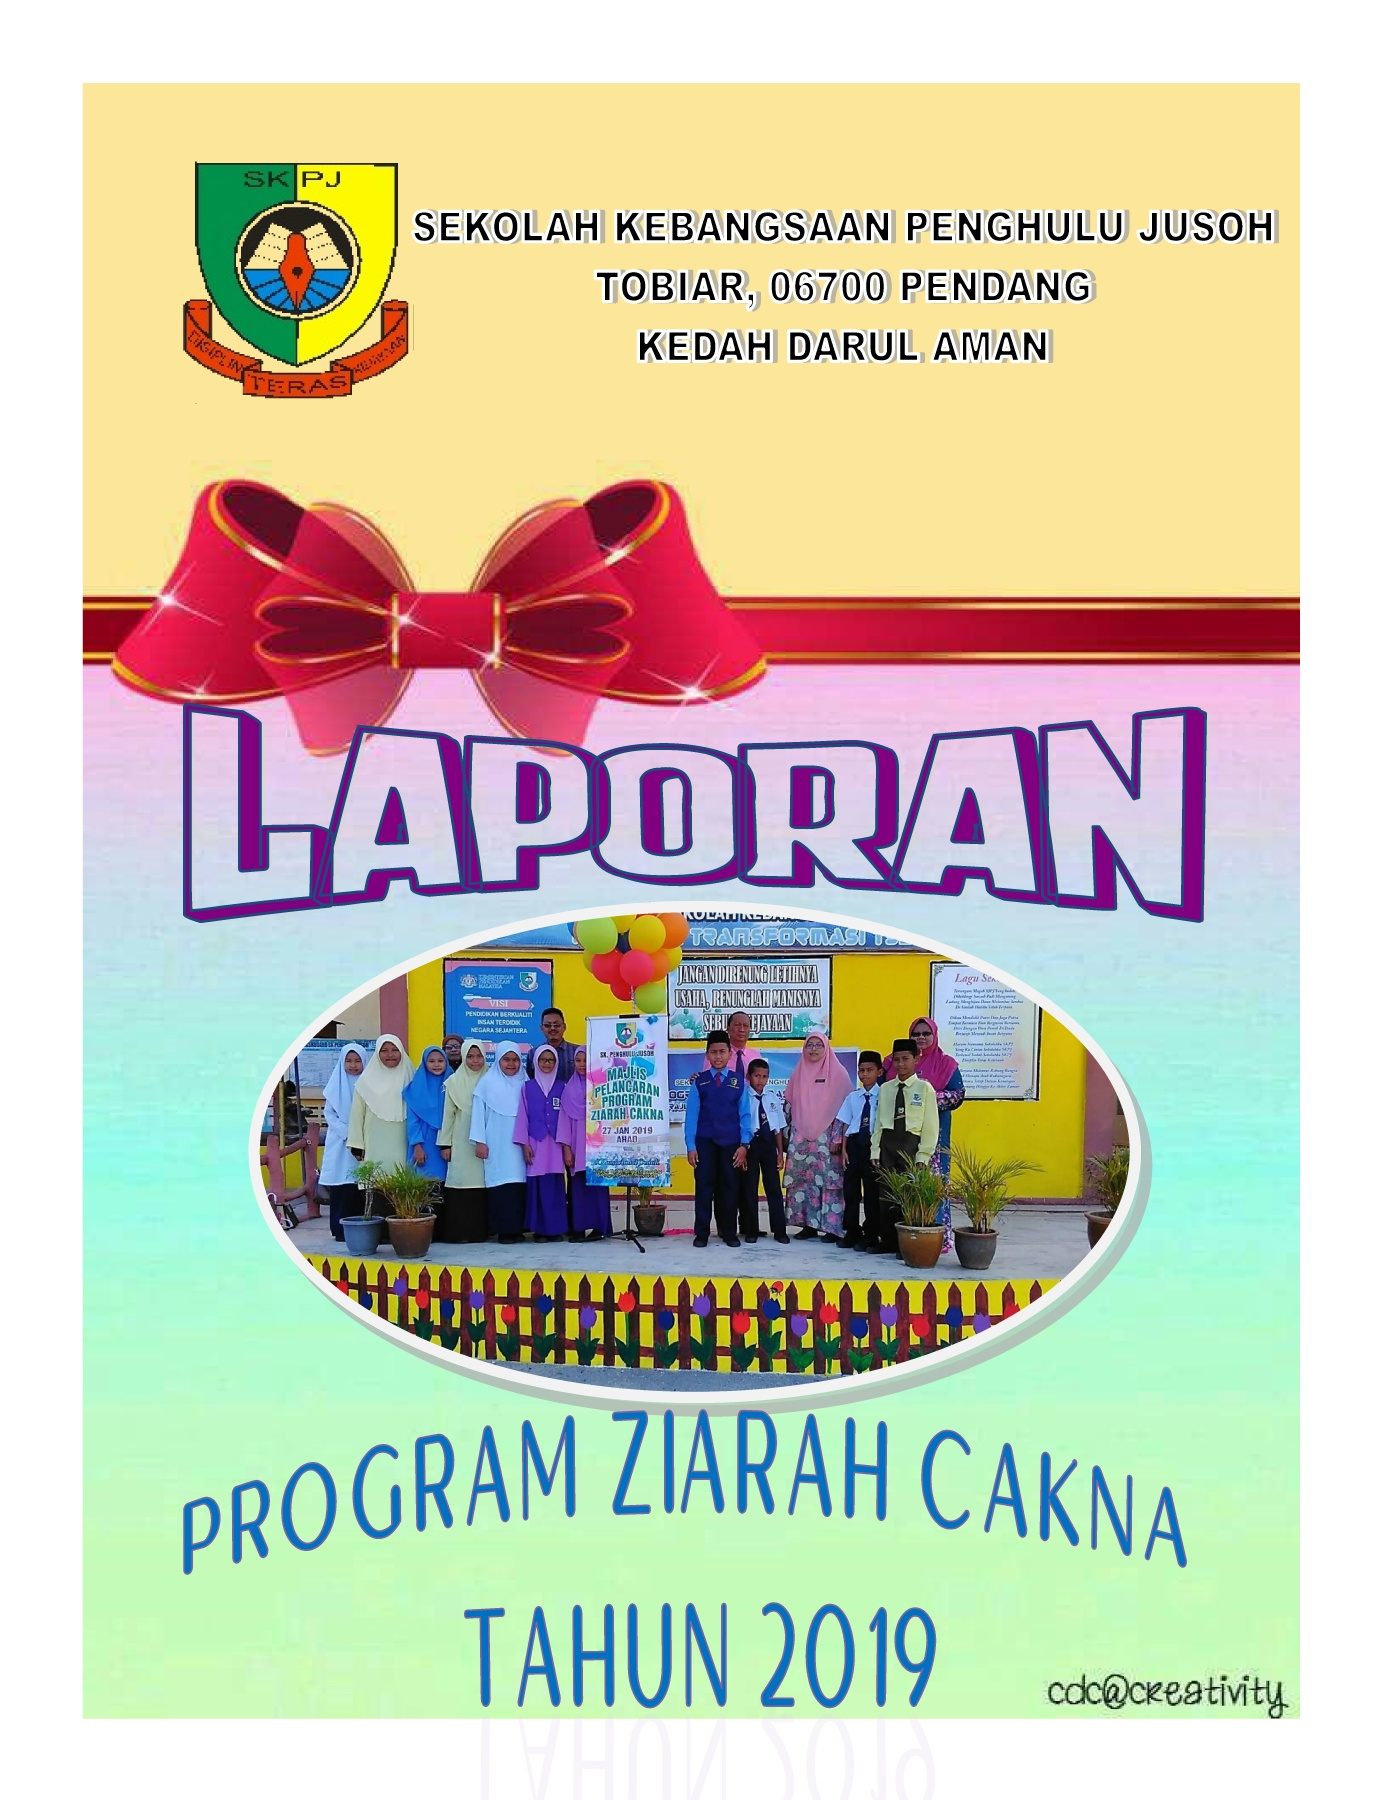 Dokumentasi Program Ziarah Cakna Flip Ebook Pages 1 13 Anyflip Anyflip